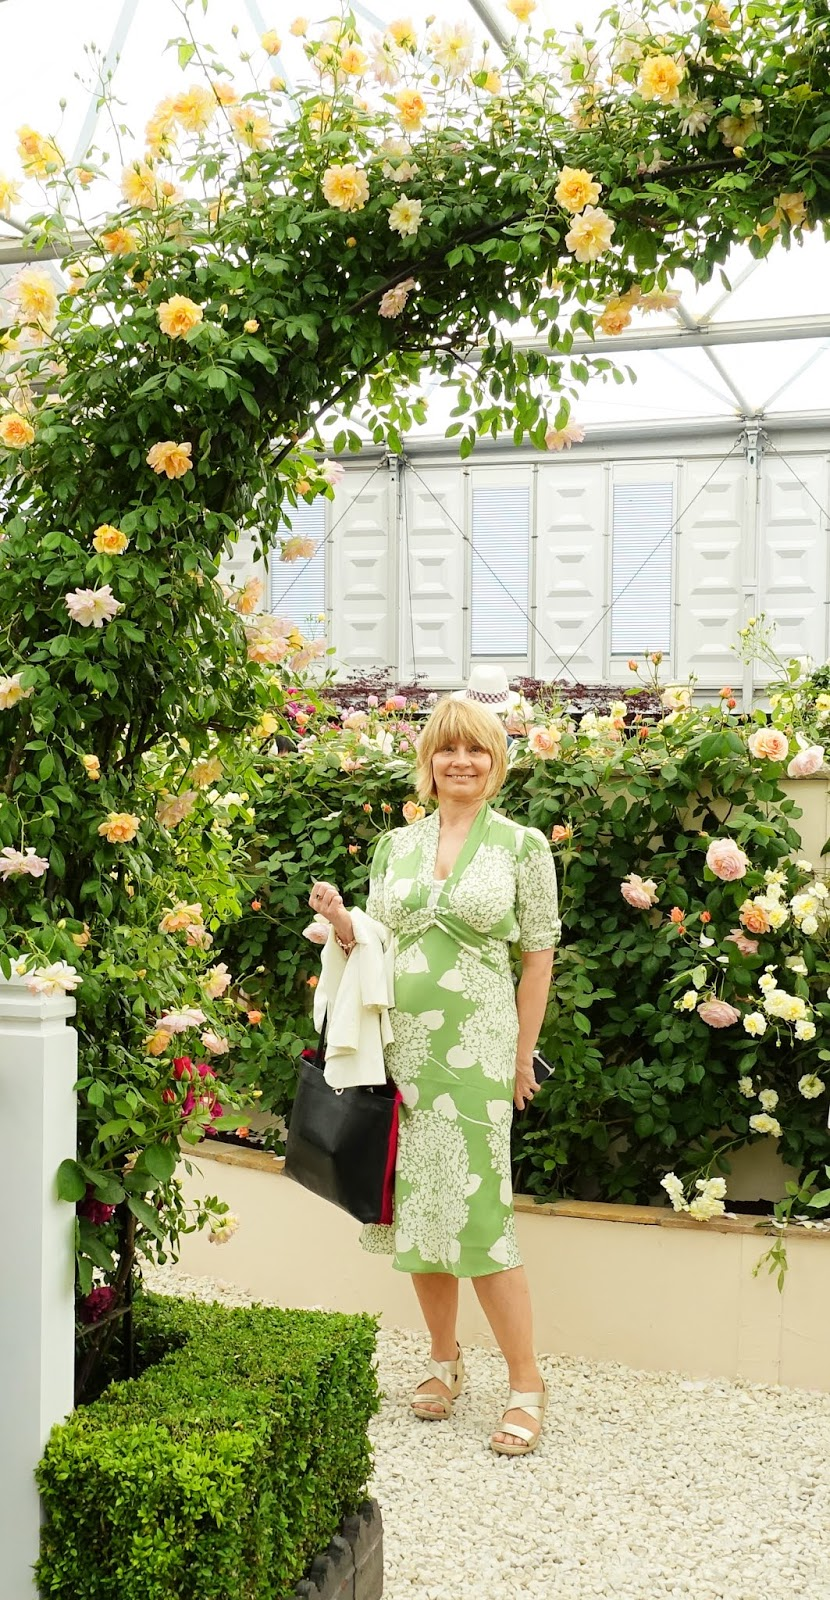 The magnificent rose arch welcoming visitors to the David Austin Roses stand at the Chelsea Flower Show, with Gail Hanlon in green floral dress